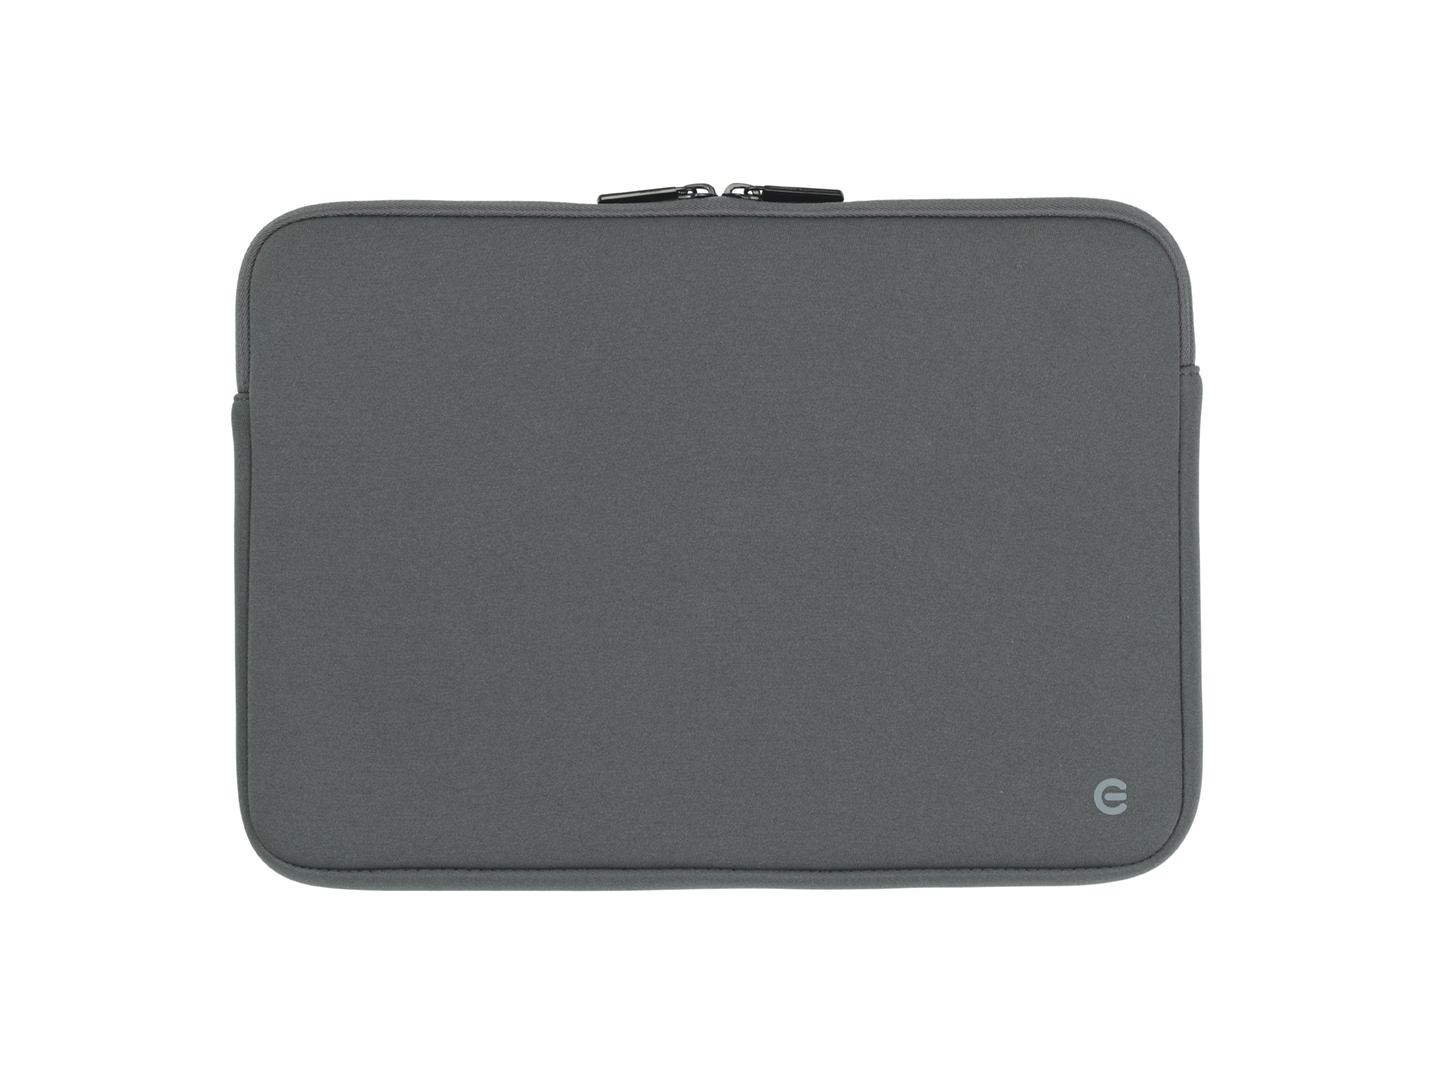 2092045-Sleeve-for-13-PC-Macbook-Space-Grey-Fits-PC-MacBooks-up-to-31-5-X-23